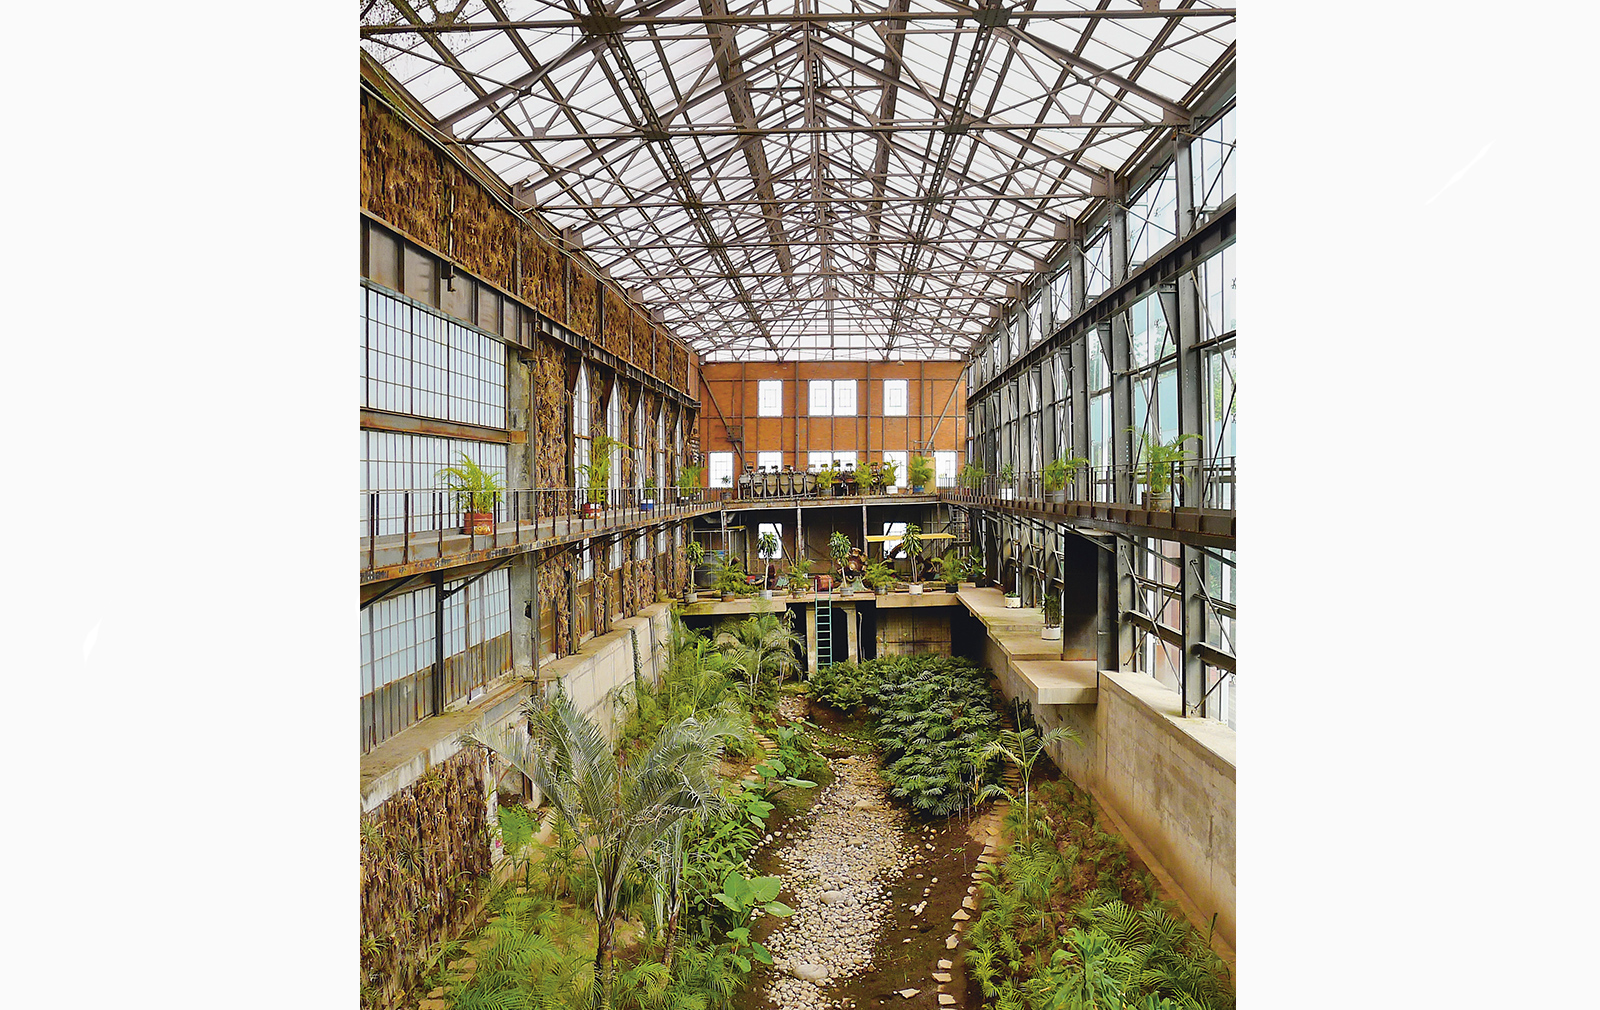 Biblioteca Vasconcelos (Vasconcelos Library) Greenhouse, Mexico City Photography: Aaron Schmidt (c)